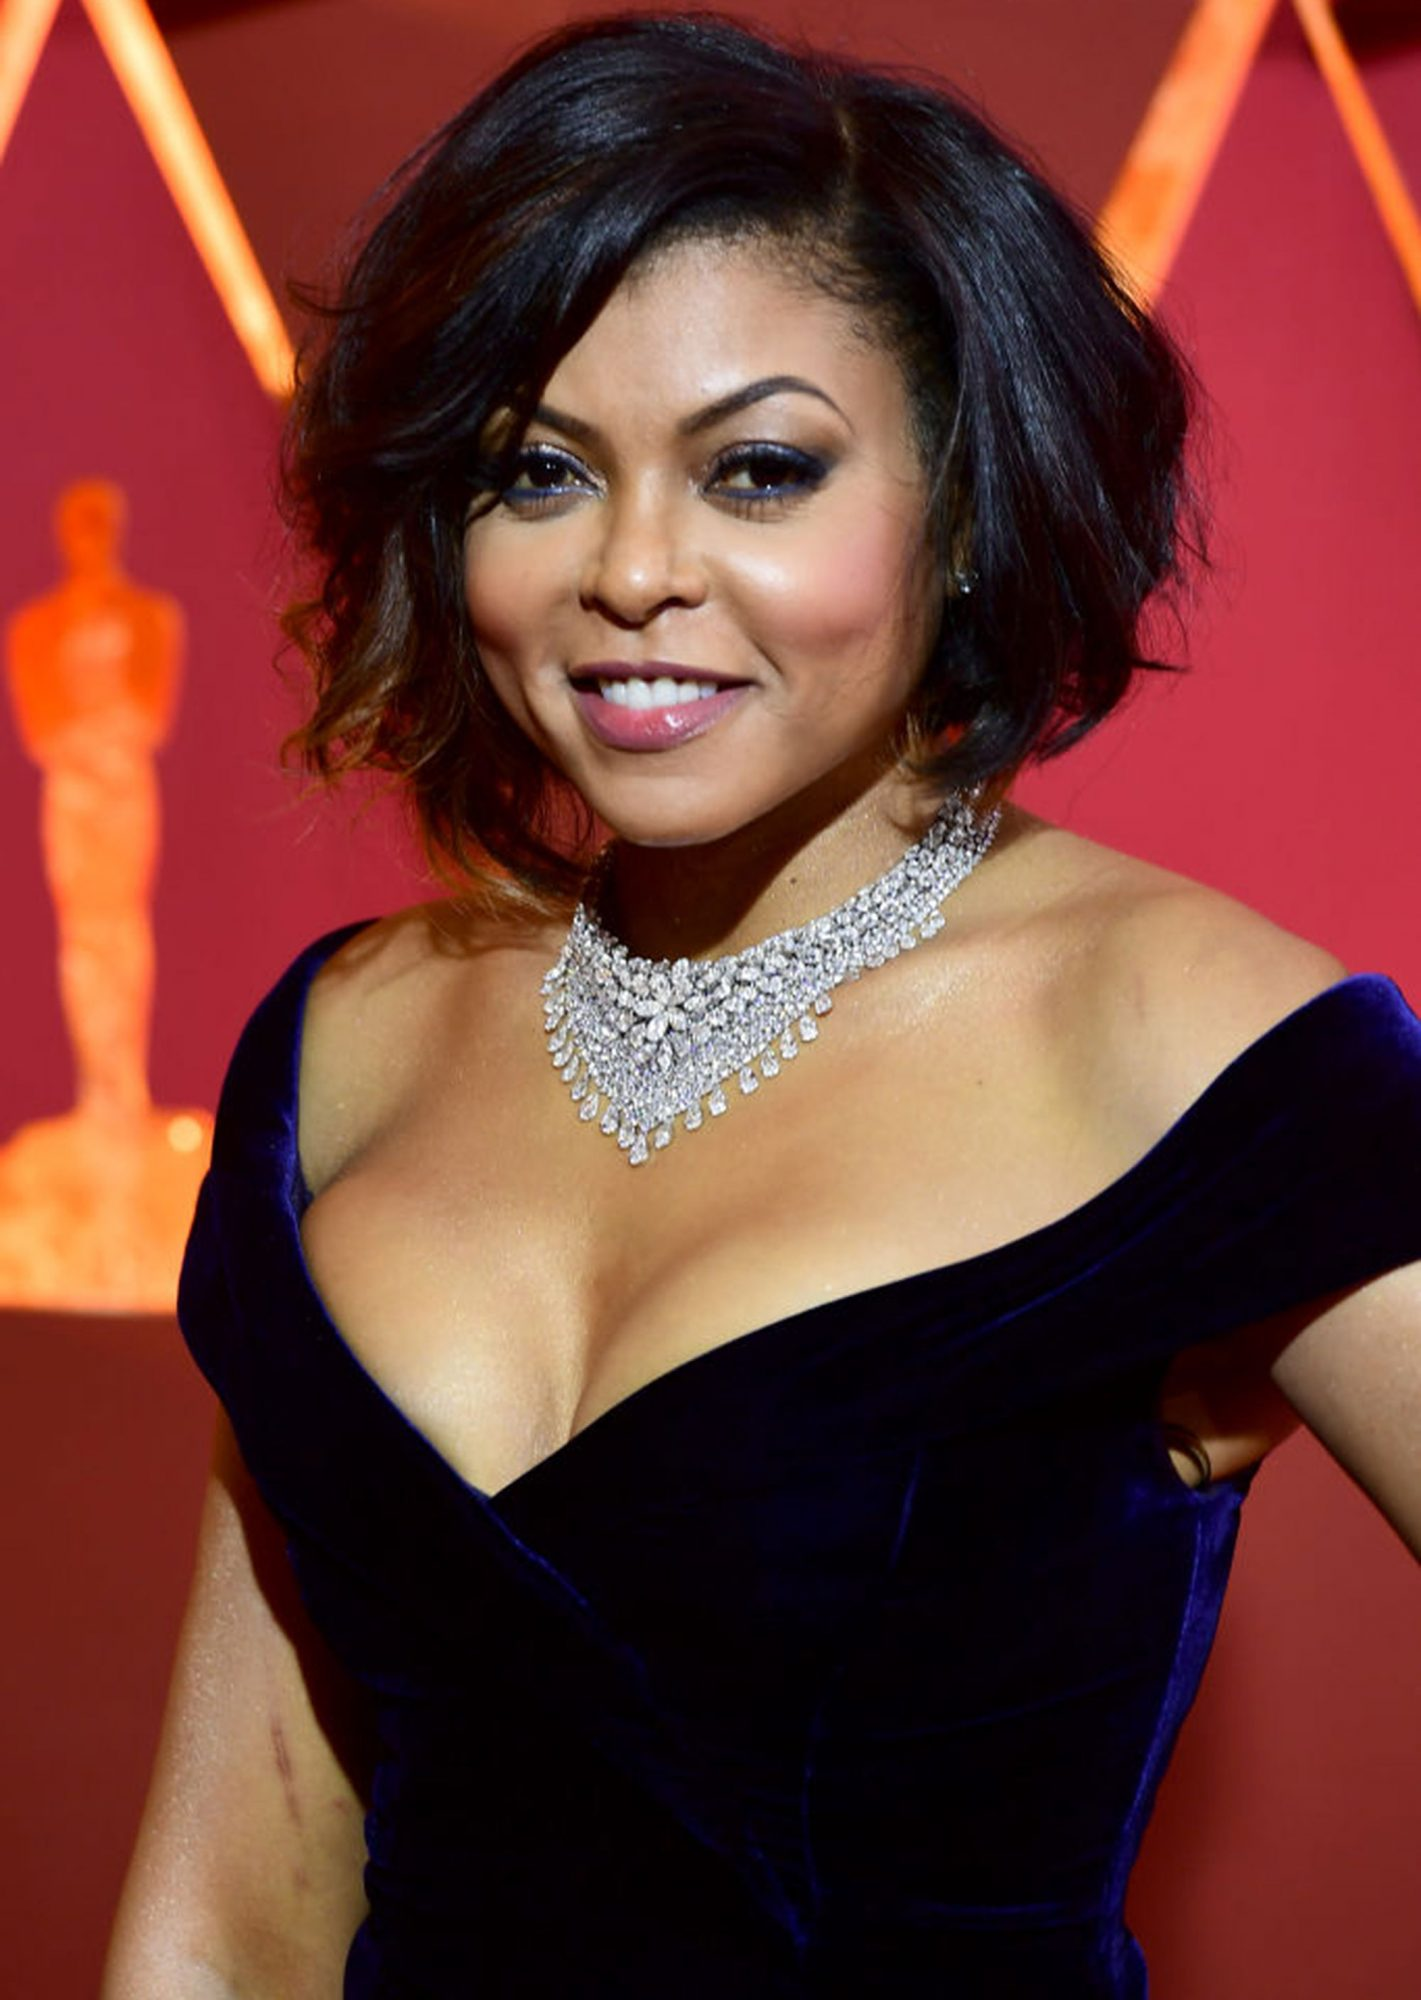 Taraji P. Henson arriving at the 89th Academy Awards held at the Dolby Theatre in Hollywood, Los Angeles, USA. (Photo by Ian West/PA Images via Getty Images)